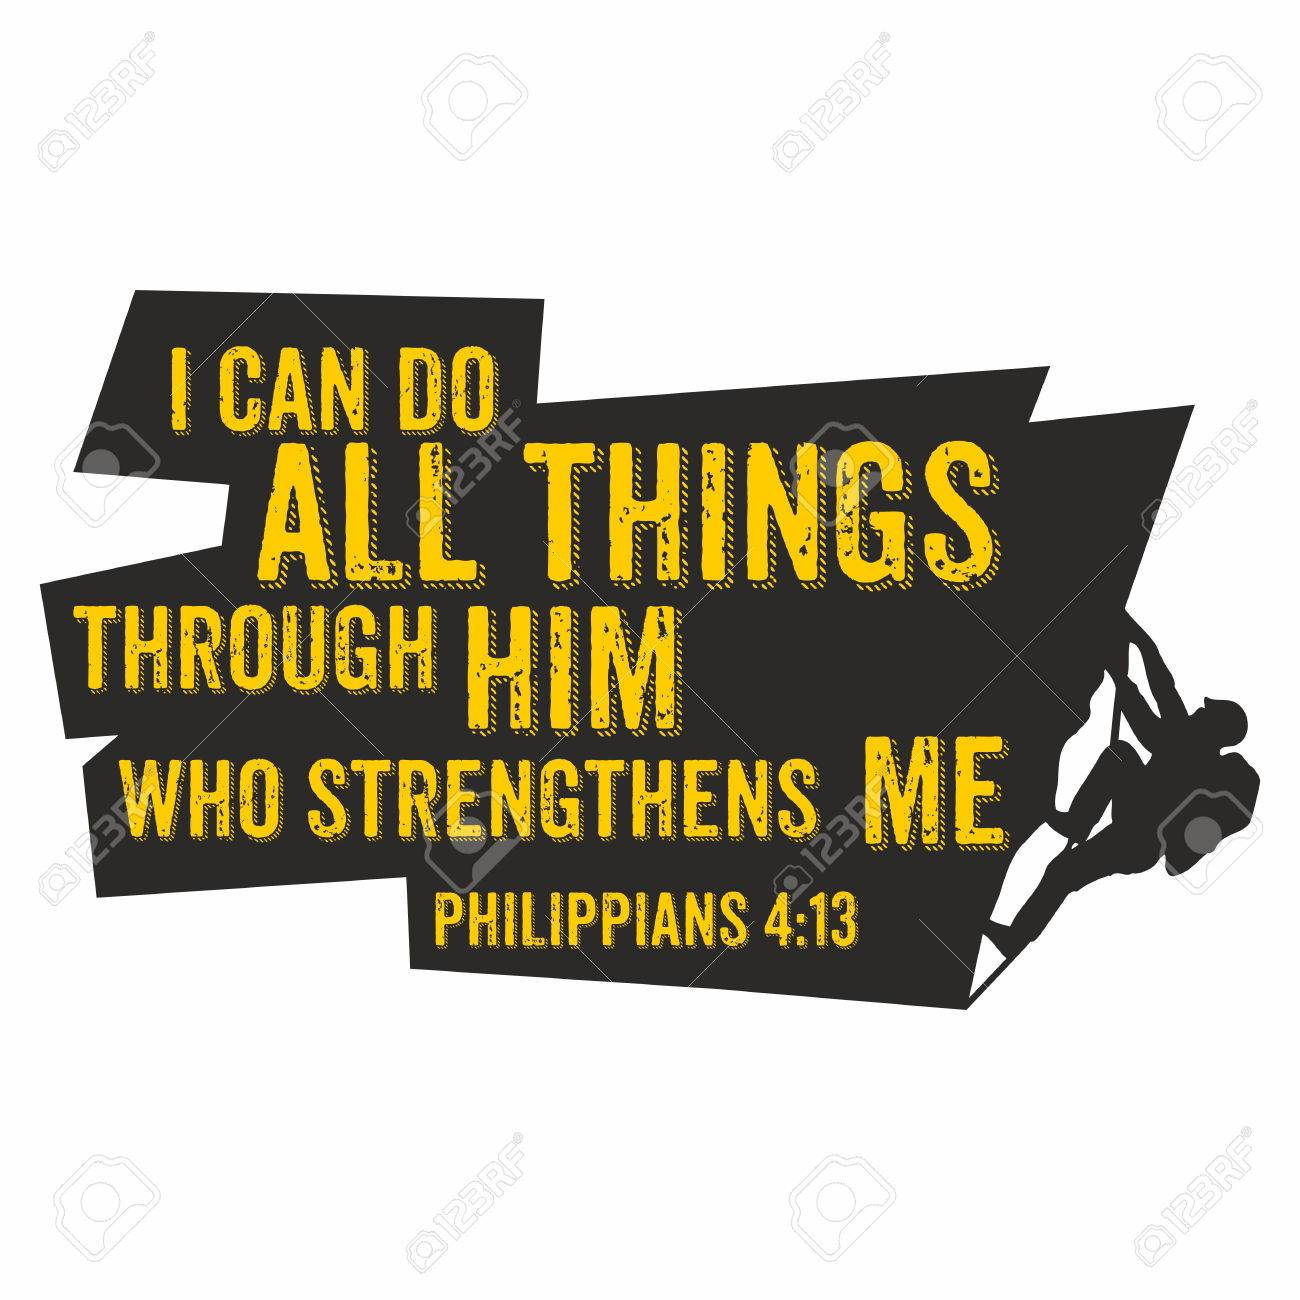 hight resolution of biblical illustration i can do all things through him who strengthens me philippians 4